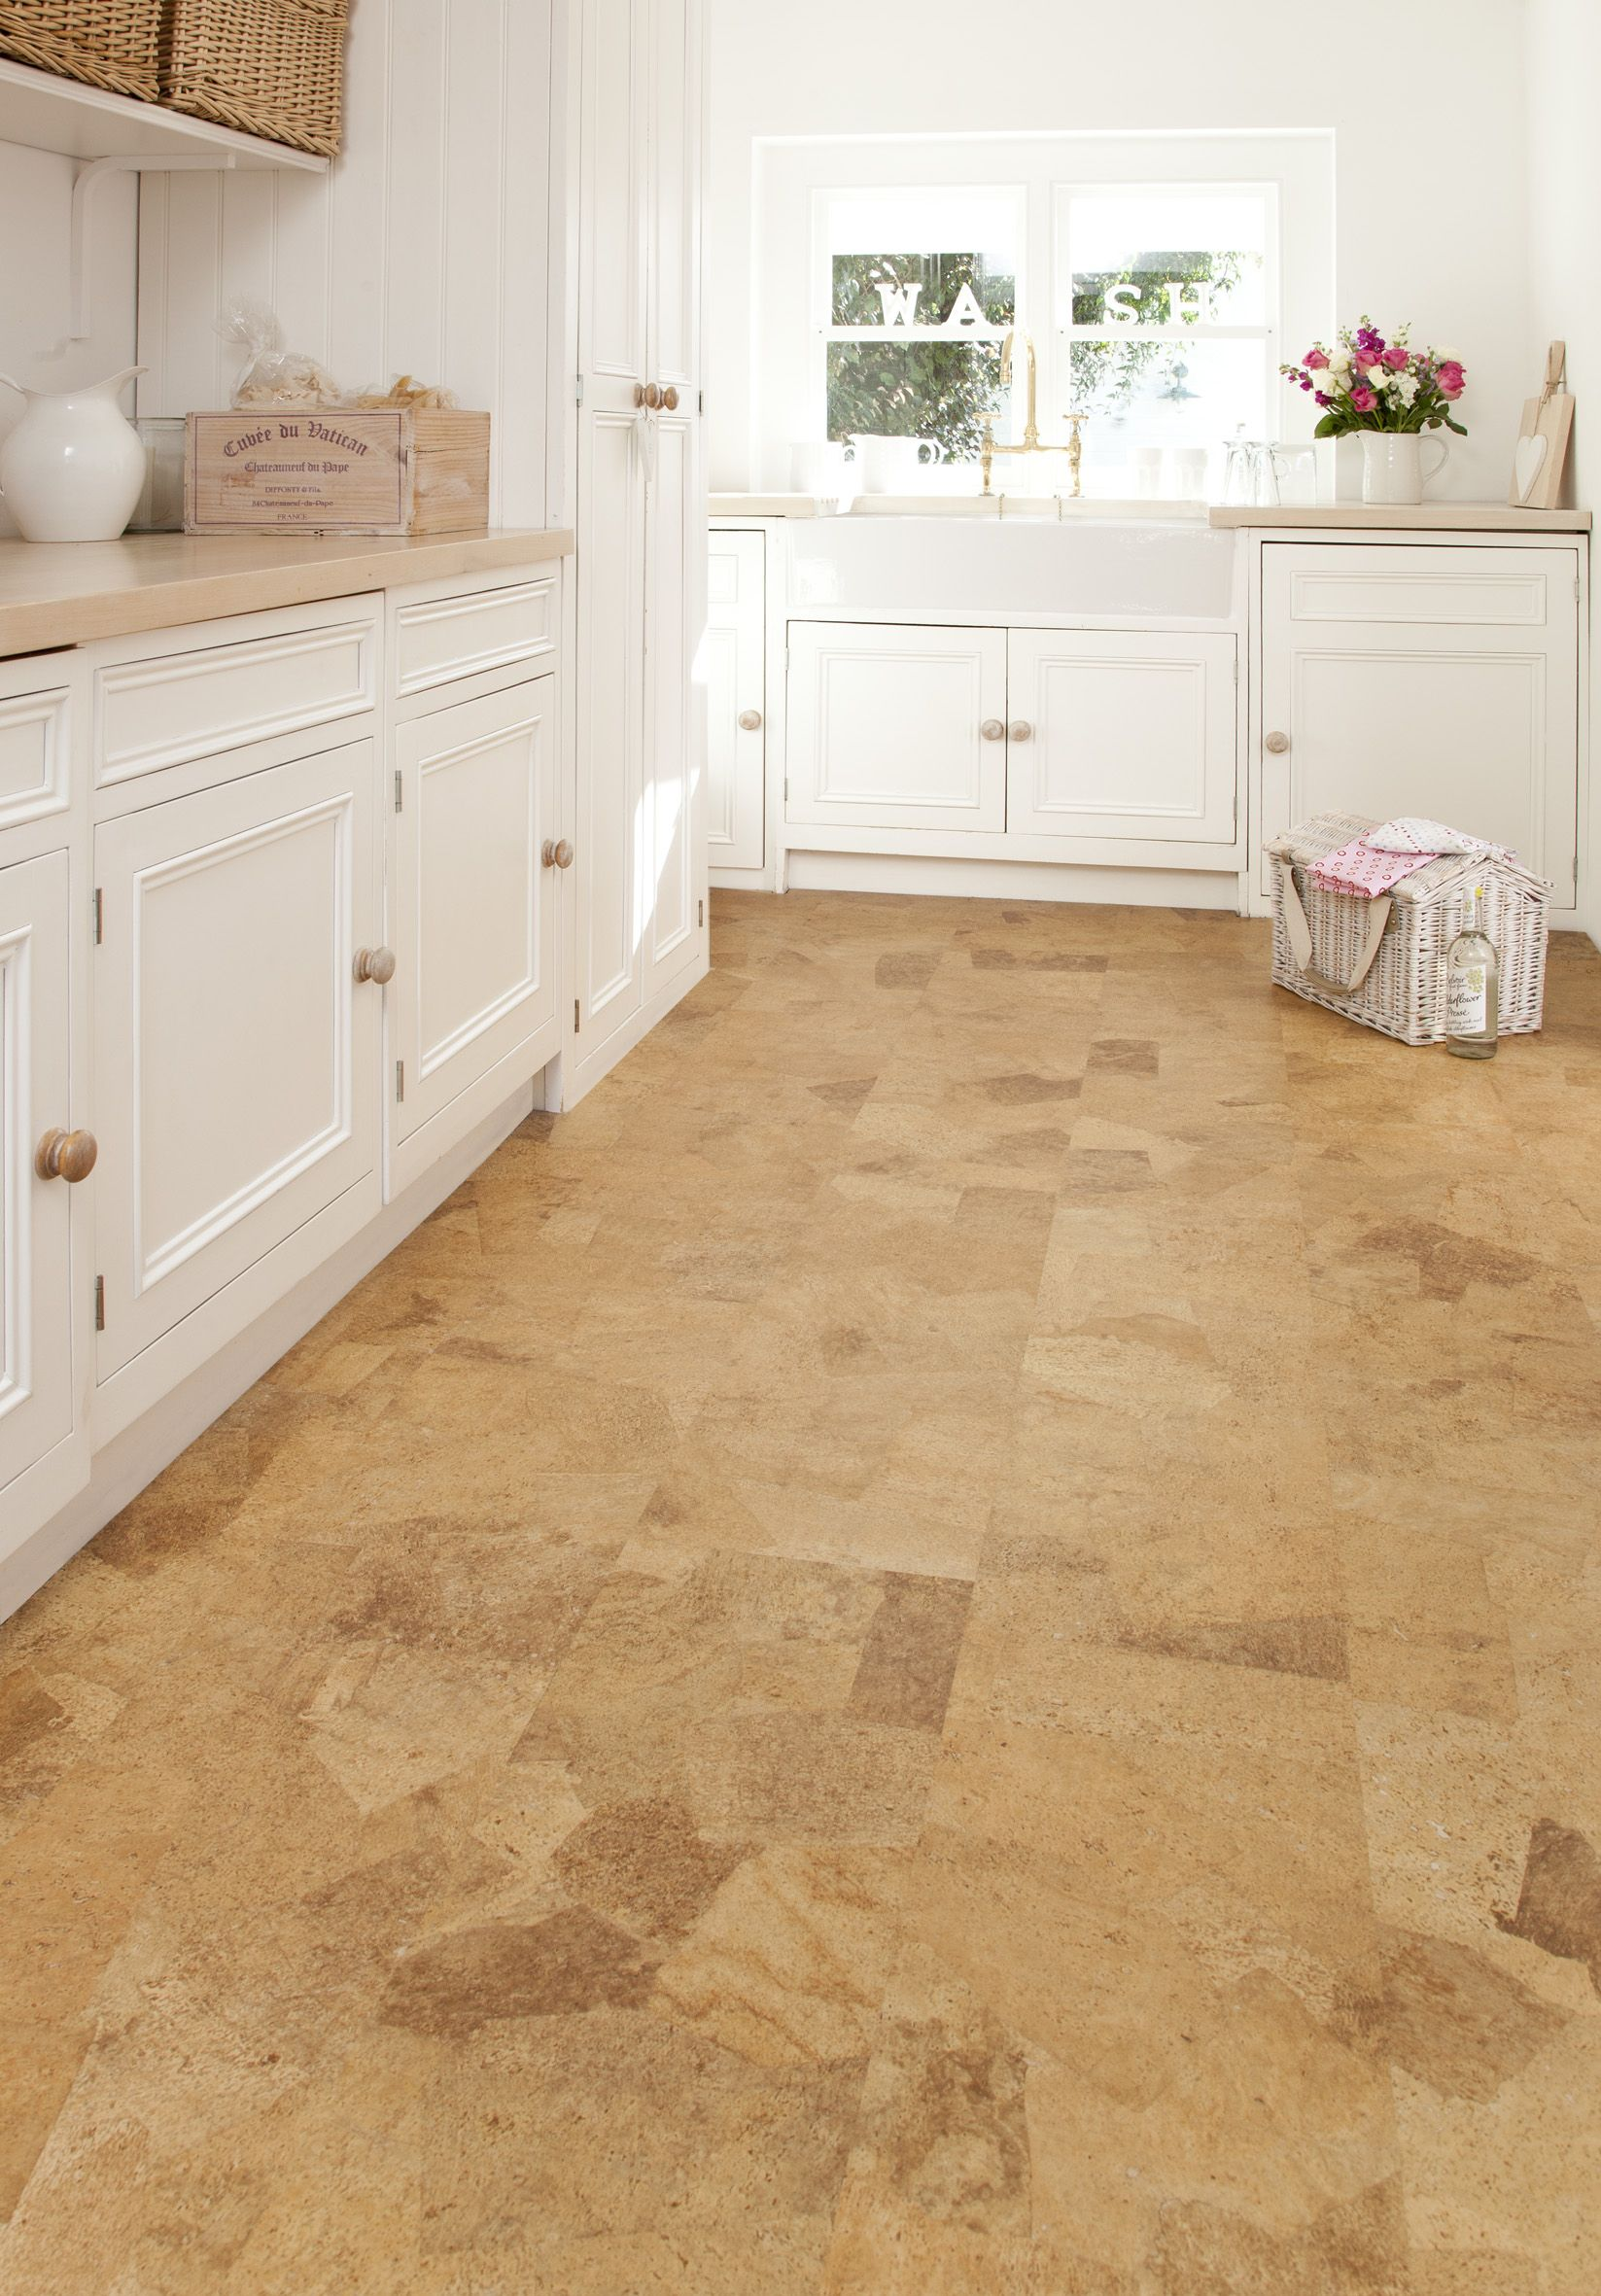 30 floor tile designs for every corner of your home cork floor kitchen dailygadgetfo Images